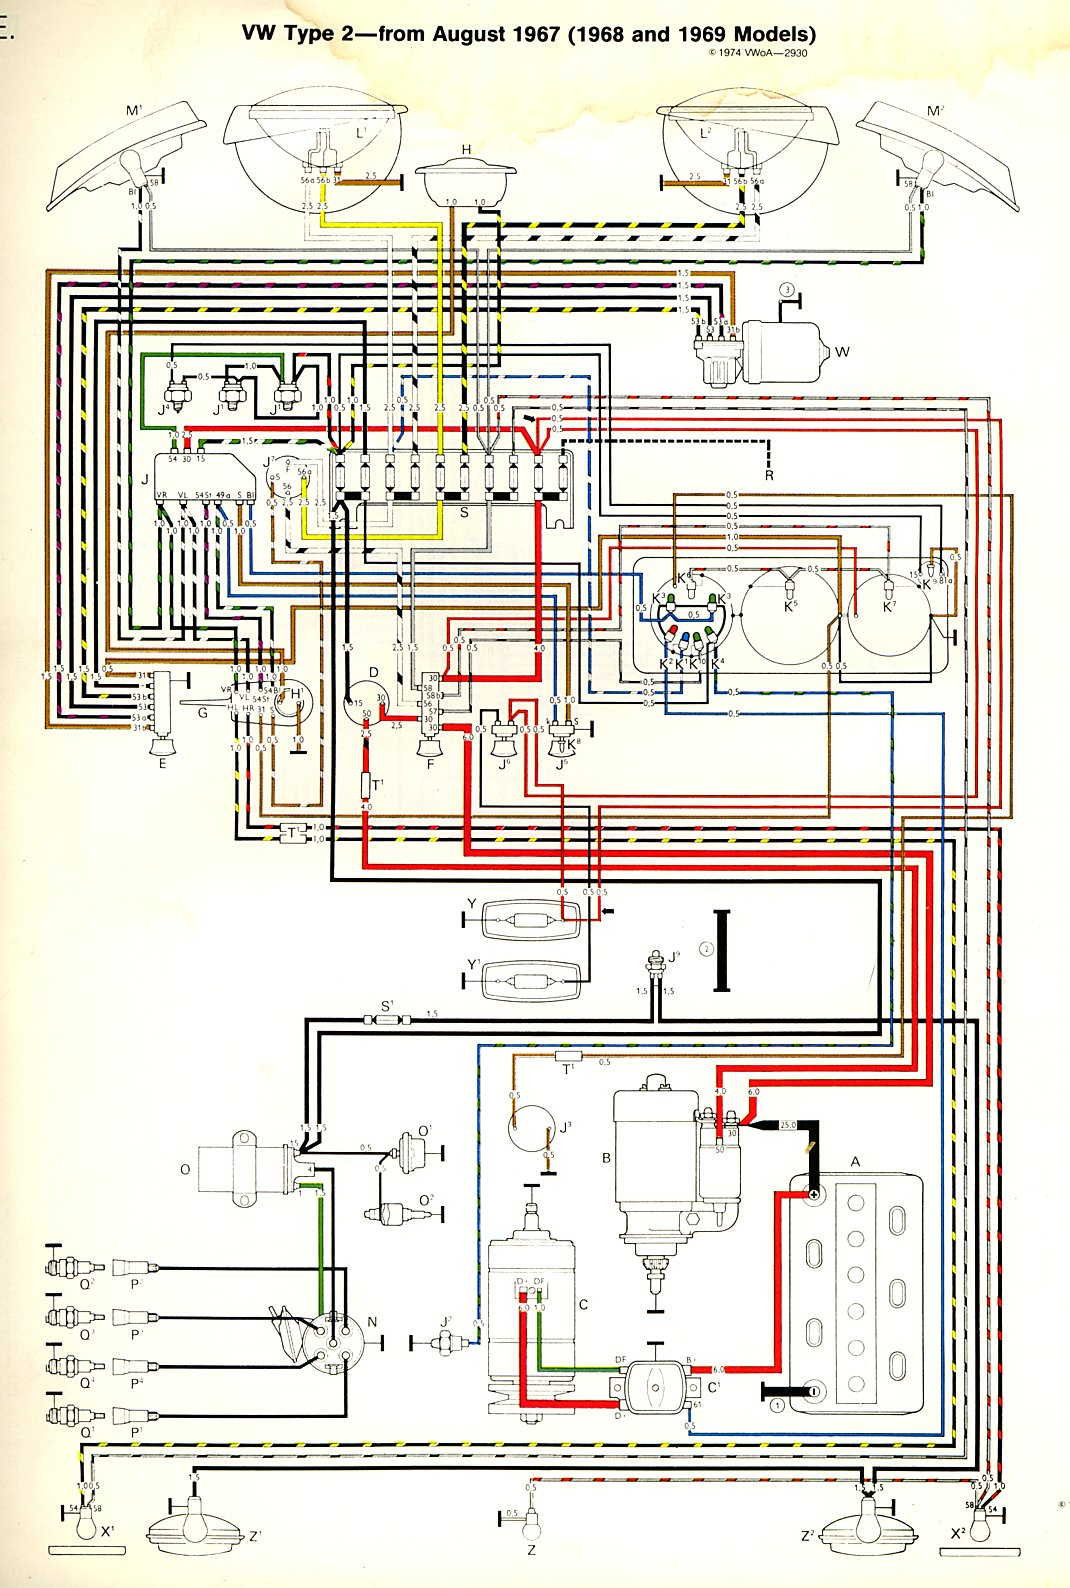 baybus_6869a 1968 69 bus wiring diagram thegoldenbug com 1971 vw bus wiring diagram at webbmarketing.co